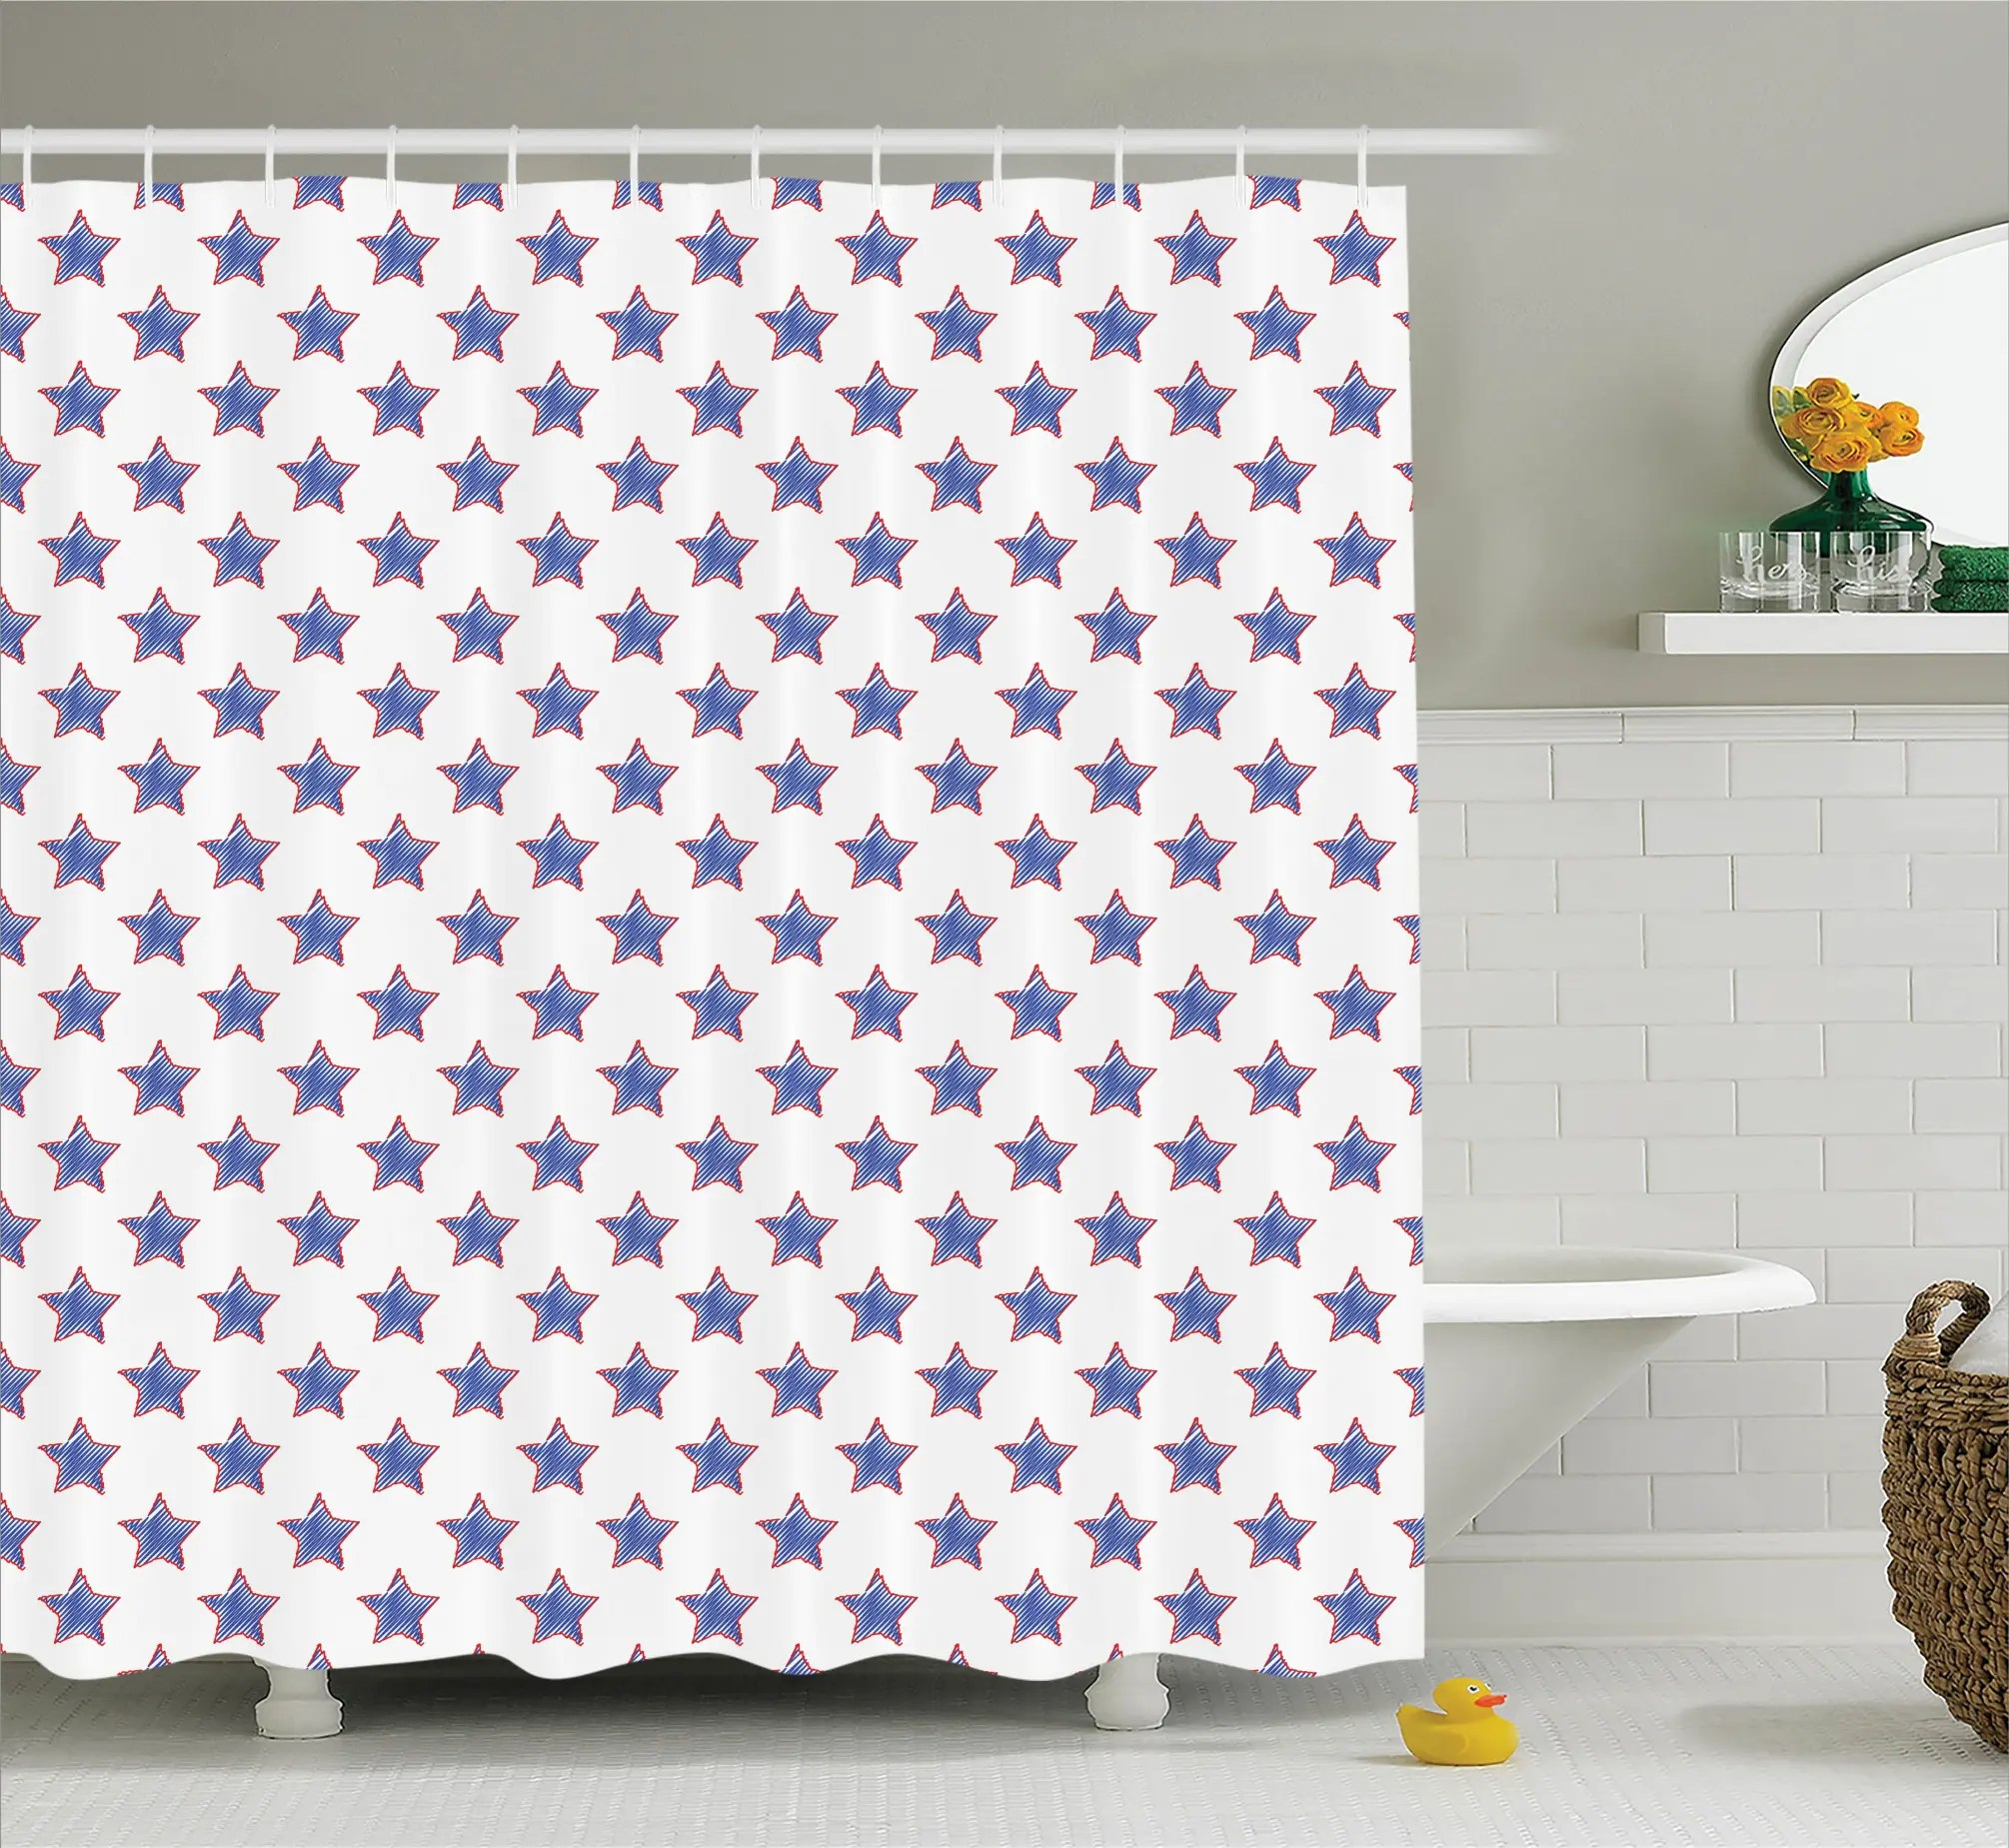 Usa Shower Curtain Usa Flag Star Nation Shower Curtain